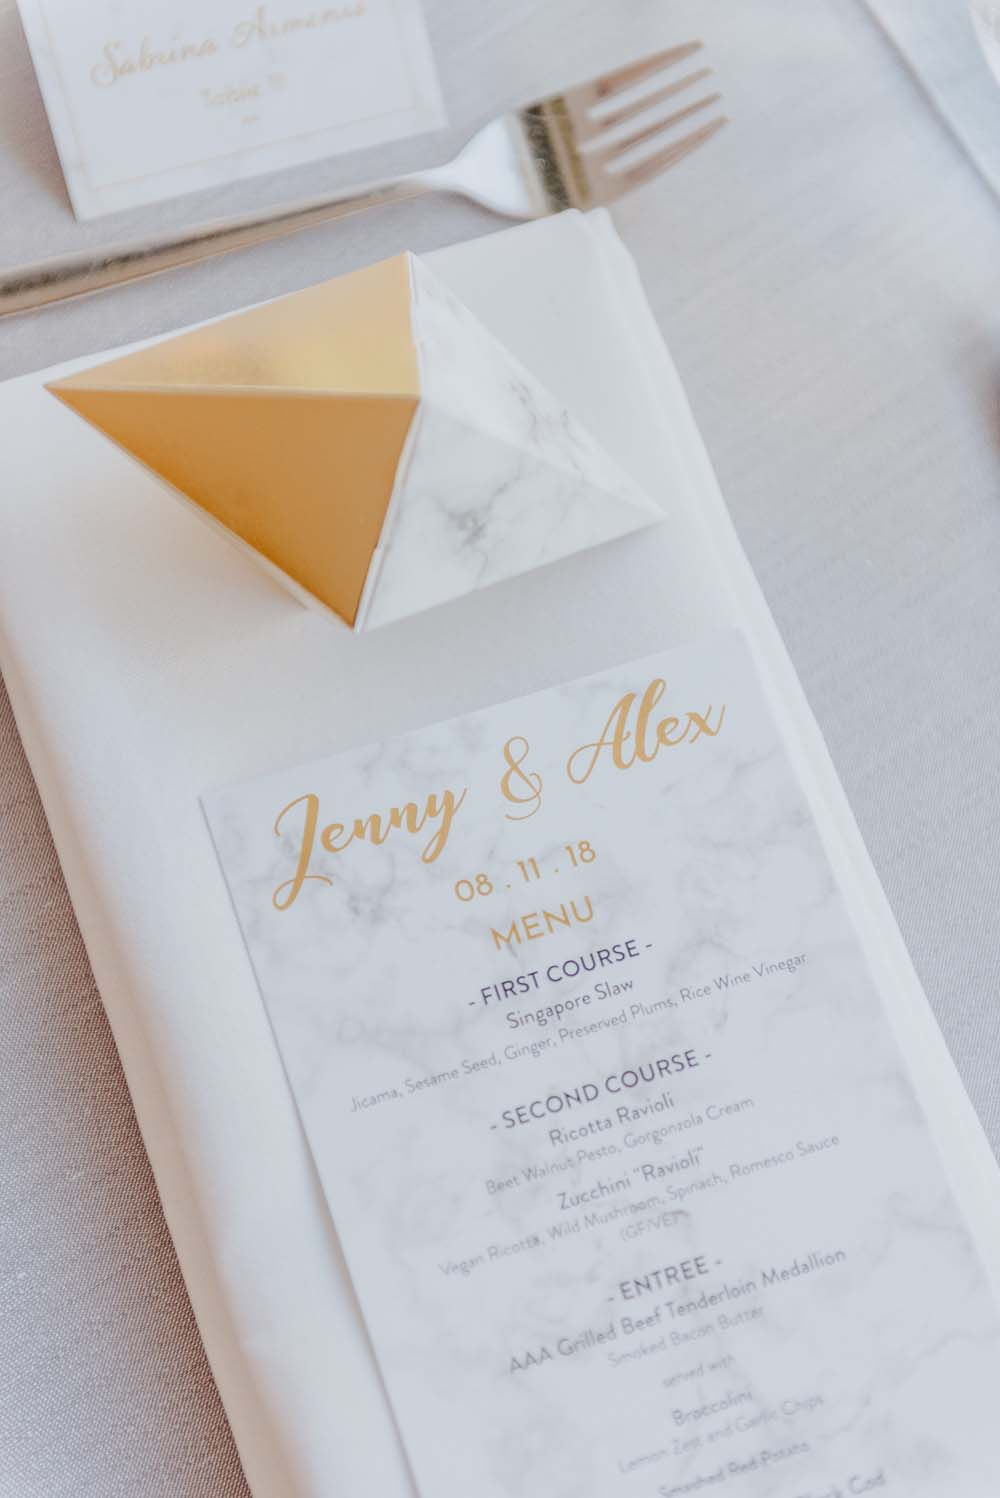 An Opulent Wedding At The Royal Conservatory Of Music - invitations